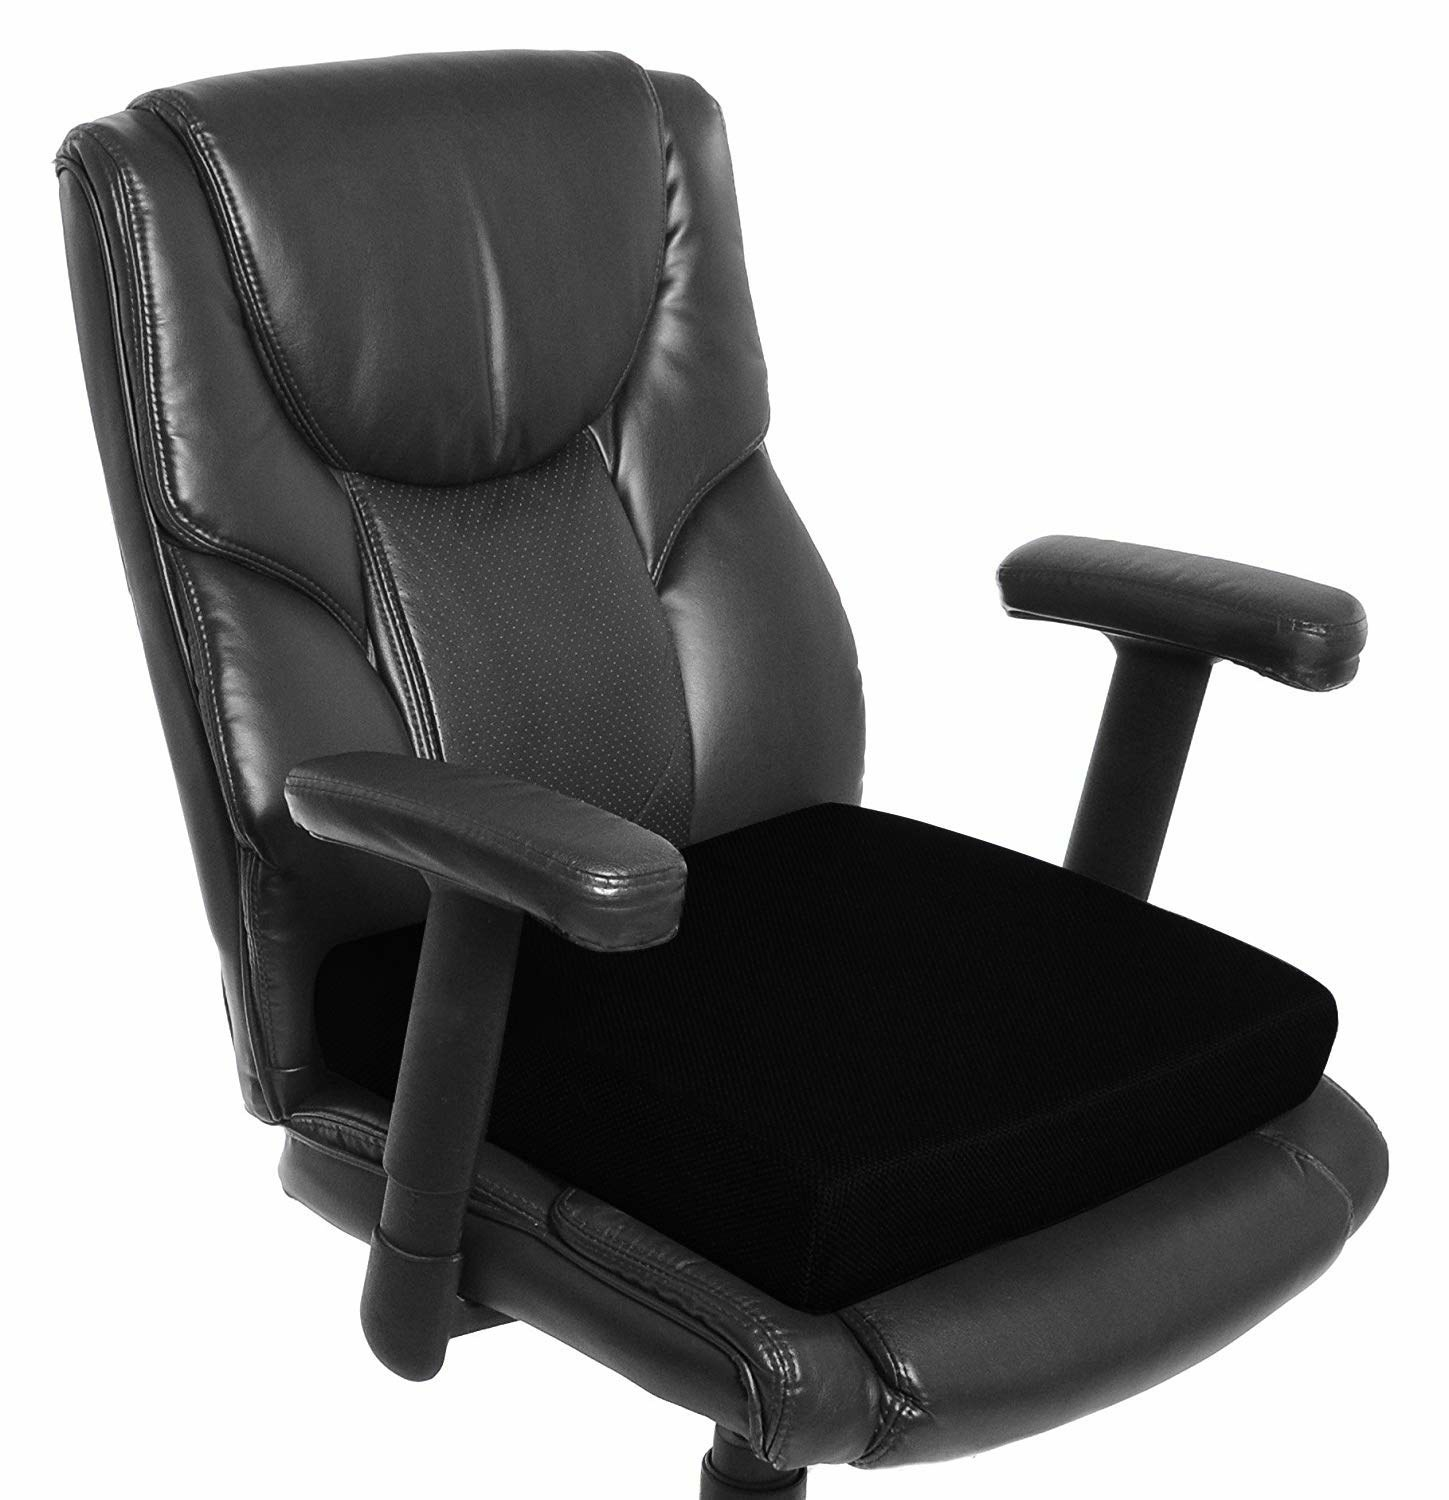 A black orthopaedic seat cushion on a computer chair